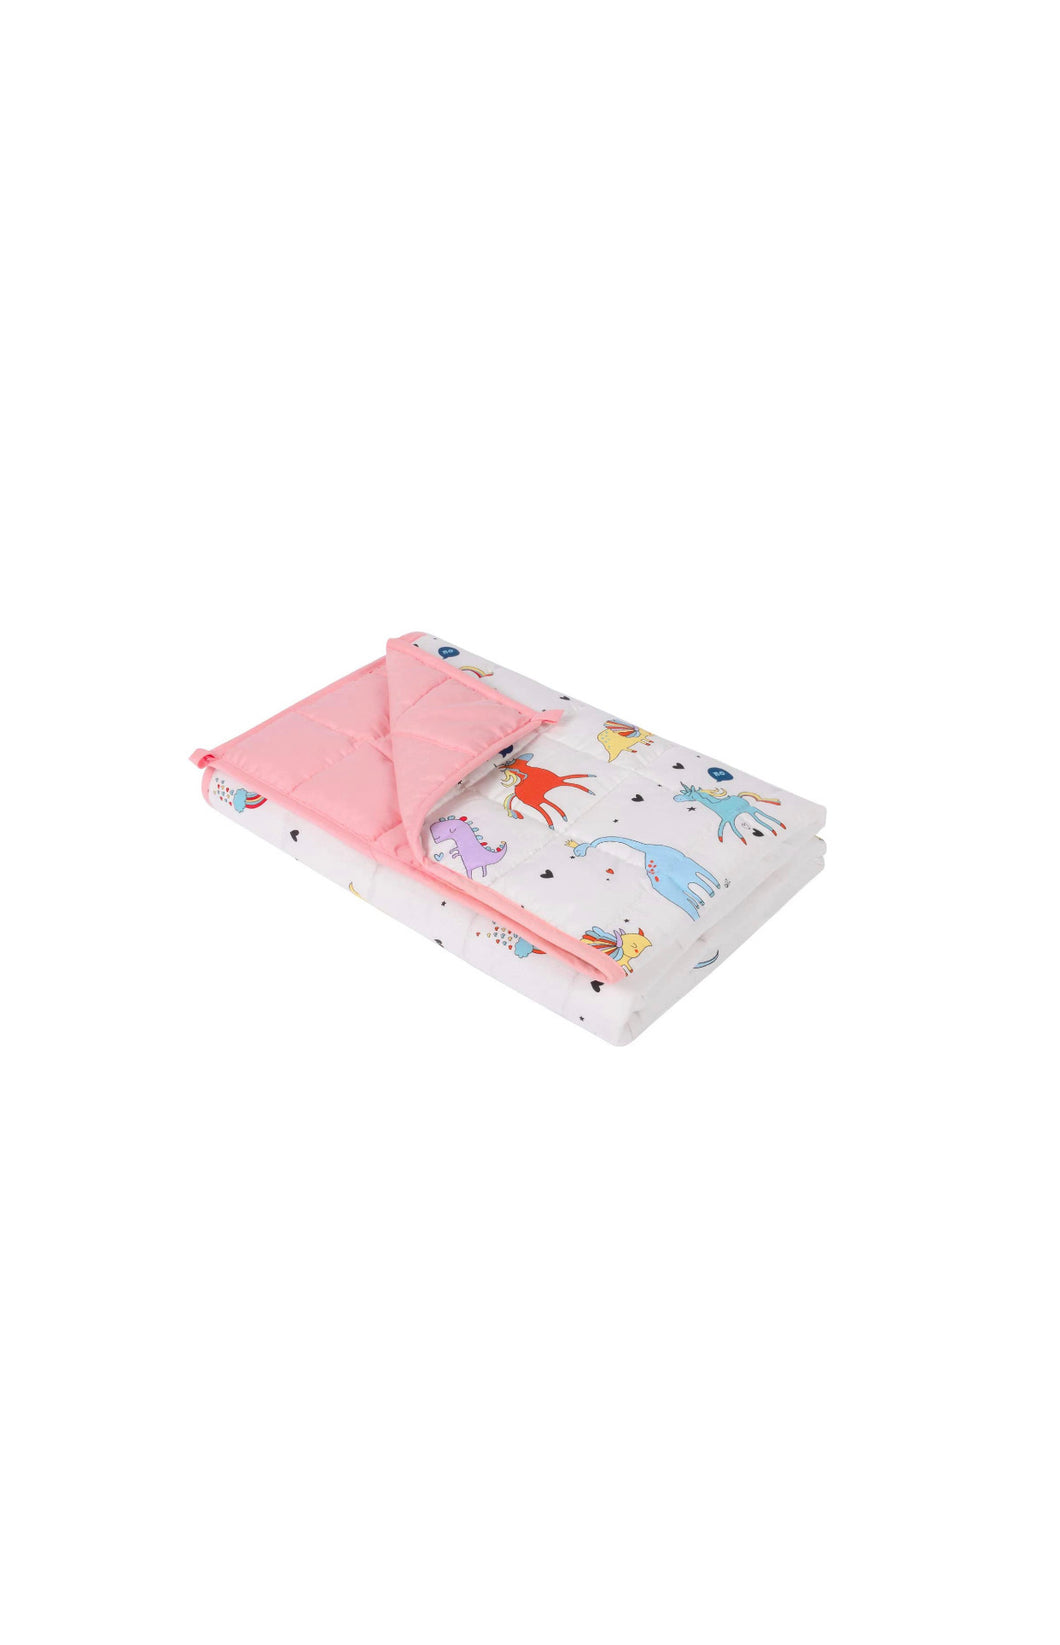 100% Cotton Children's Weighted Blanket (36